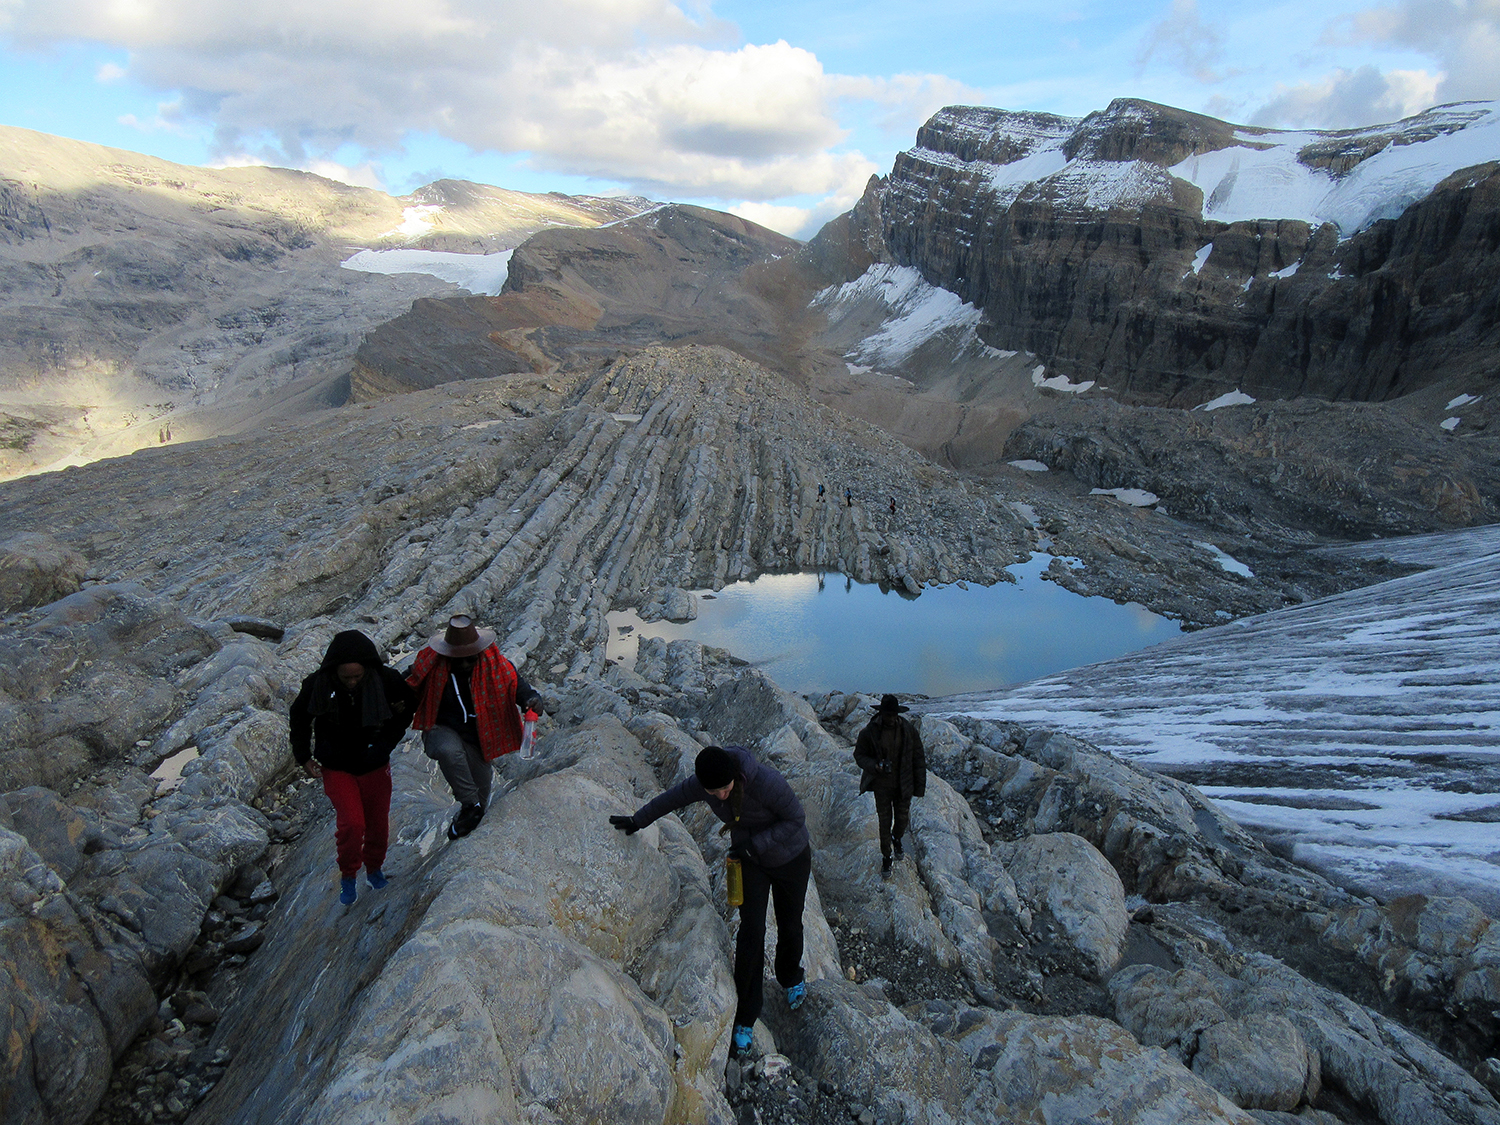 Hiking up beside the Bow Glacier to try to catch views of the Wapta Icefield at sunset.